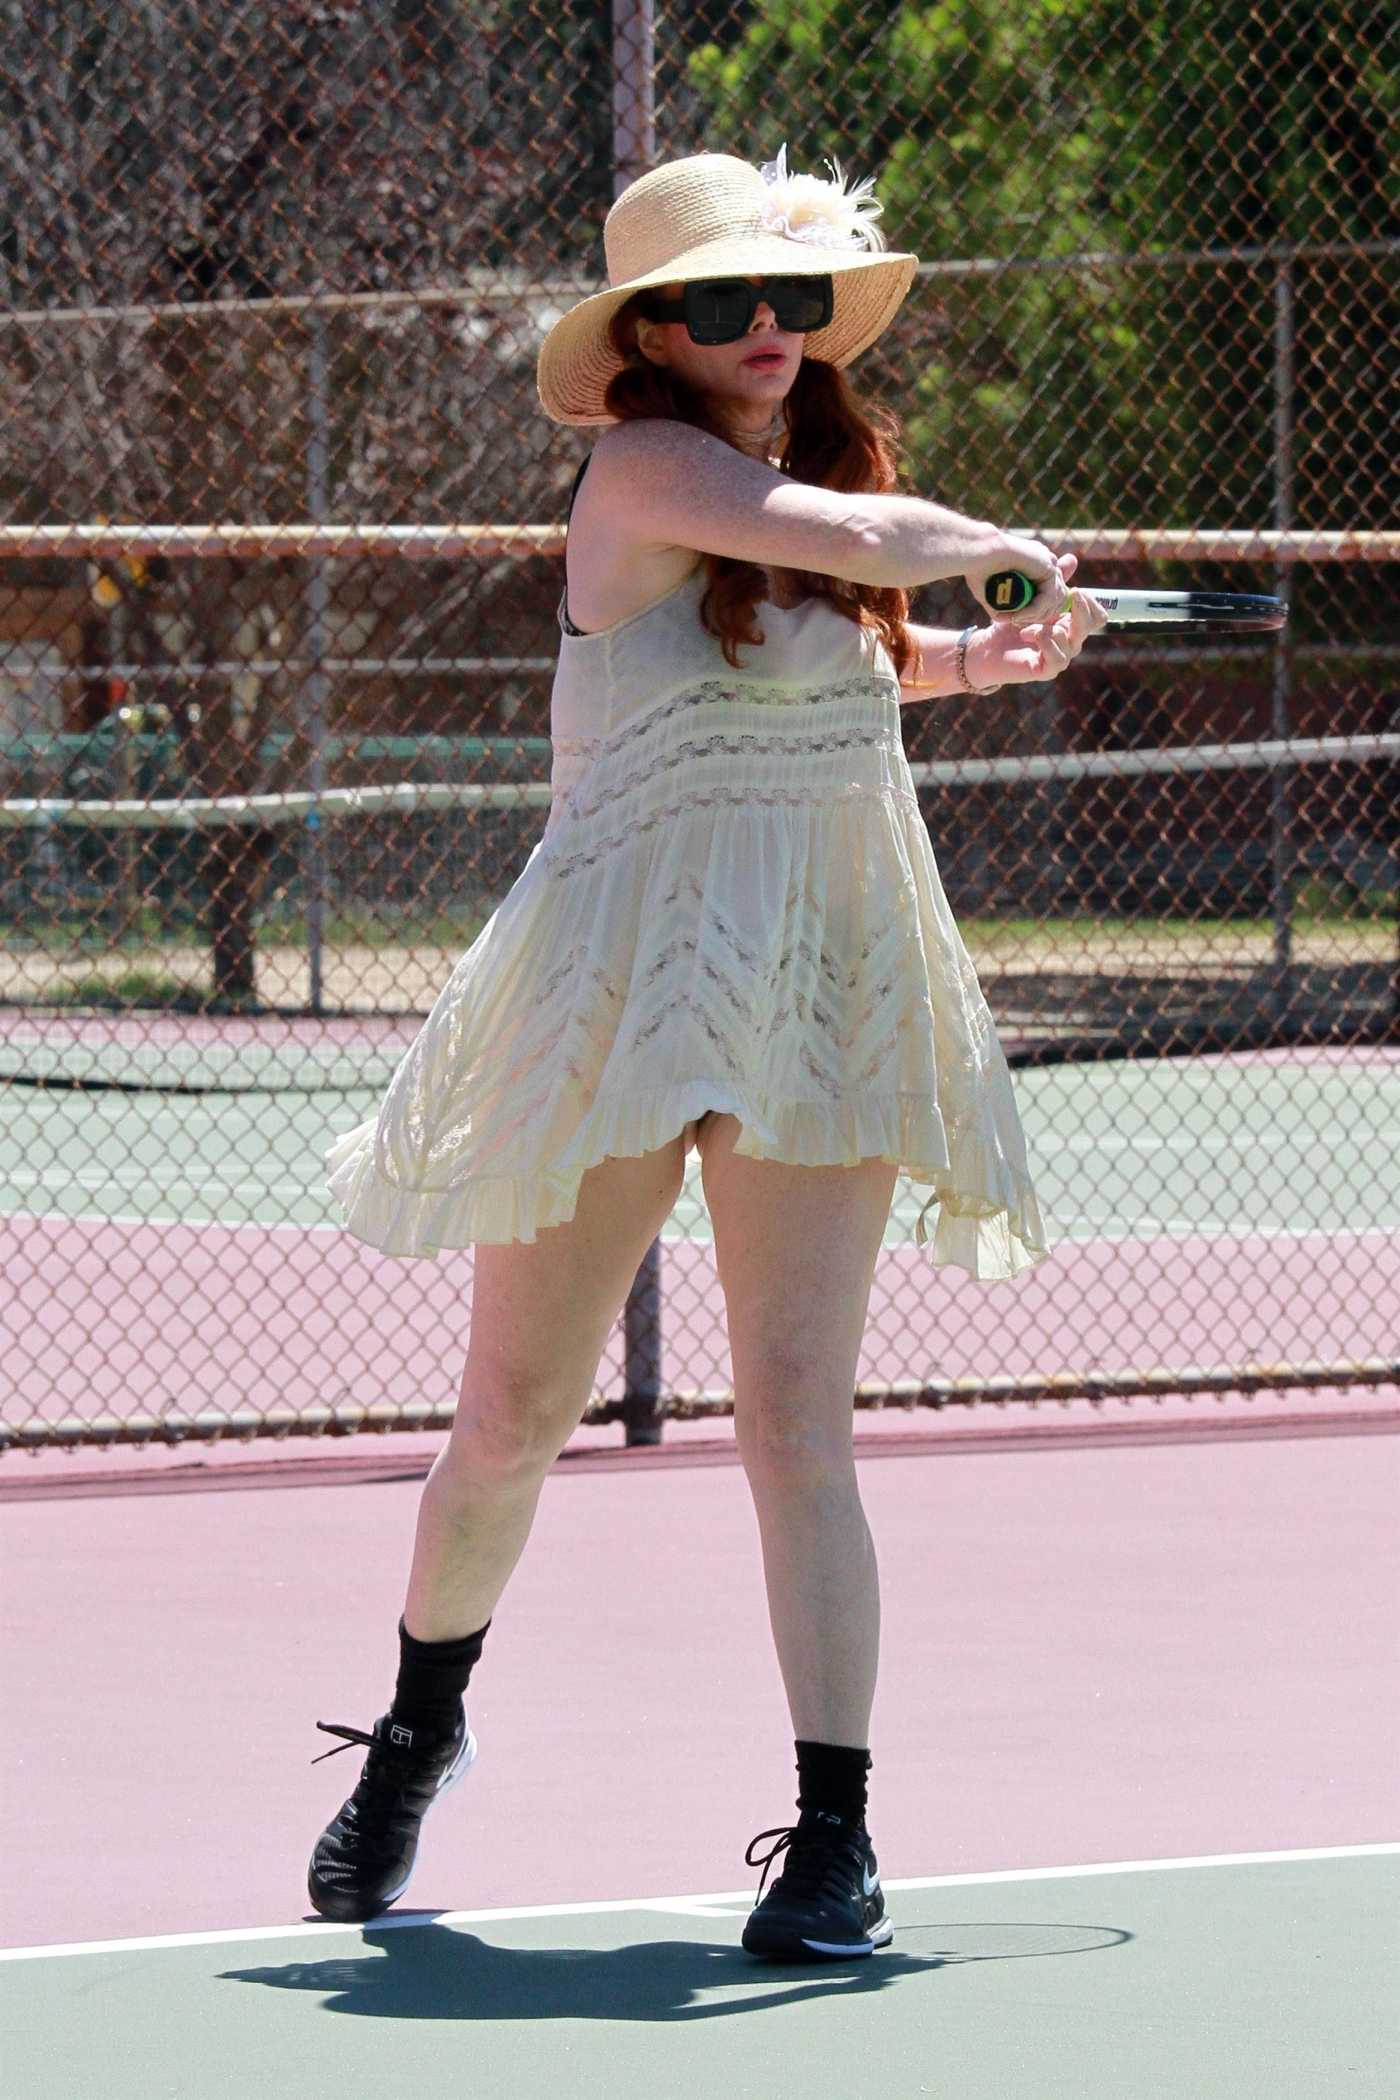 Phoebe Price in a Beige Hat Was Seen at the Tennis Court in Los Angeles 07/10/2020